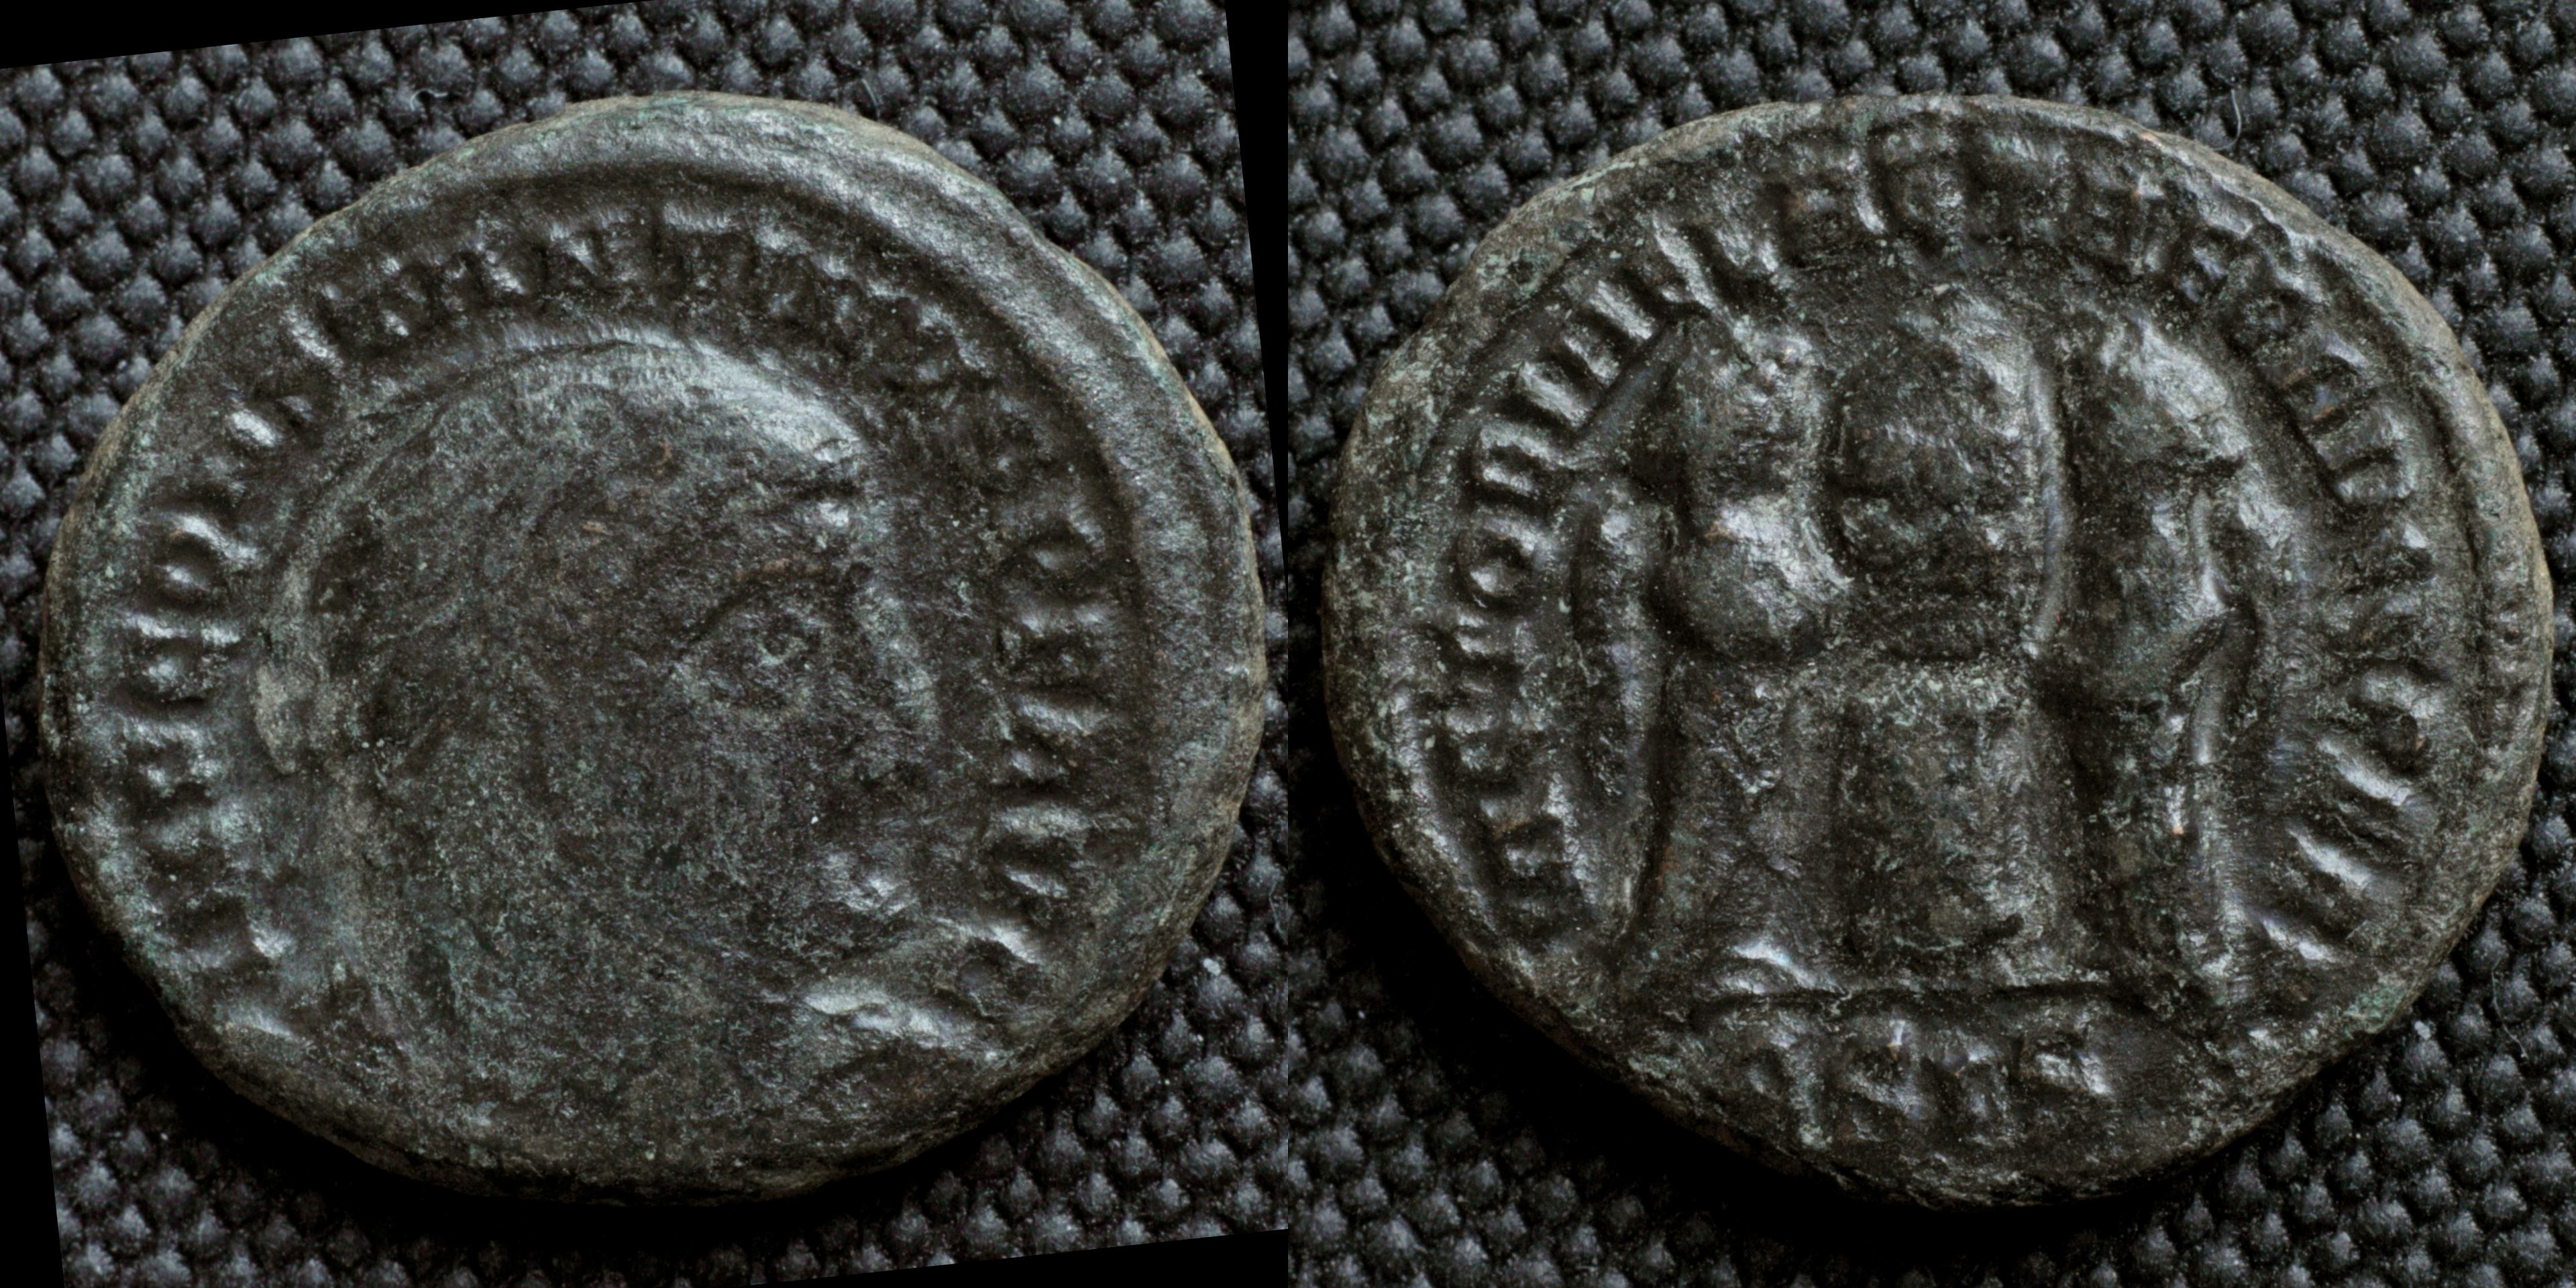 /Files/Images/Coinsite/CoinDB/48_Constantine_I_Siscia.jpg